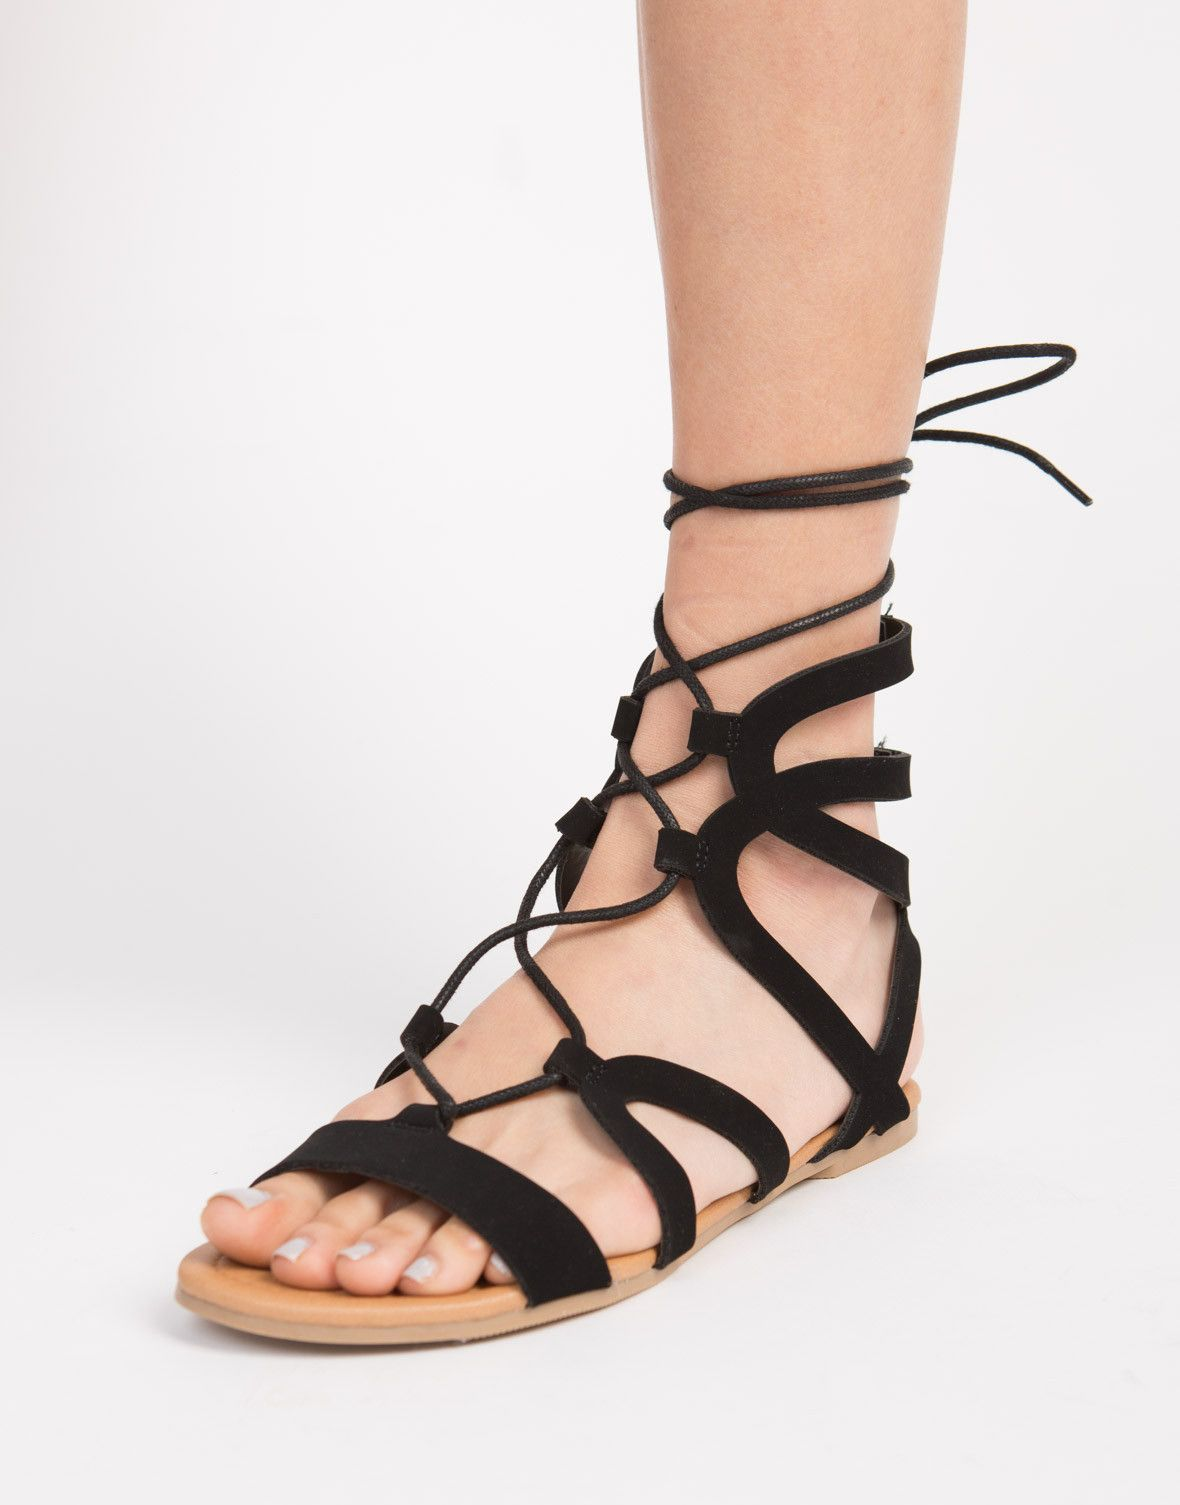 3edd9441e5b1 You won t find any other sandals like these super comfy Strappy Lace-Up  Sandals. Looks perfect when paired with a simple romper and crossbody bag.